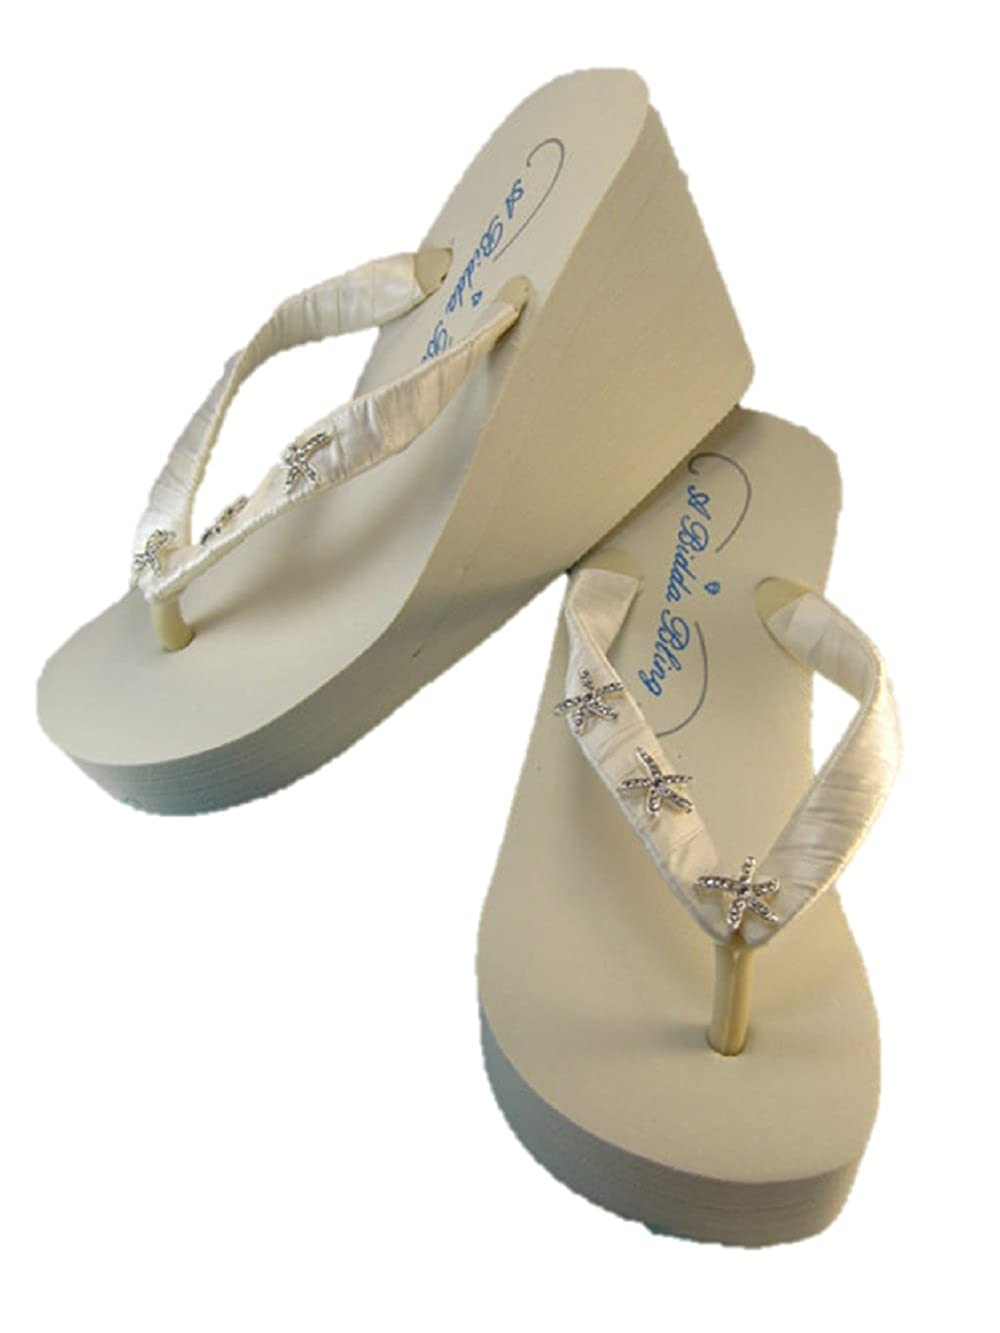 19a40a2c7c9d8 High Ivory Wedge Bridal Flip Flop Sandals with Rhinestone Starfish